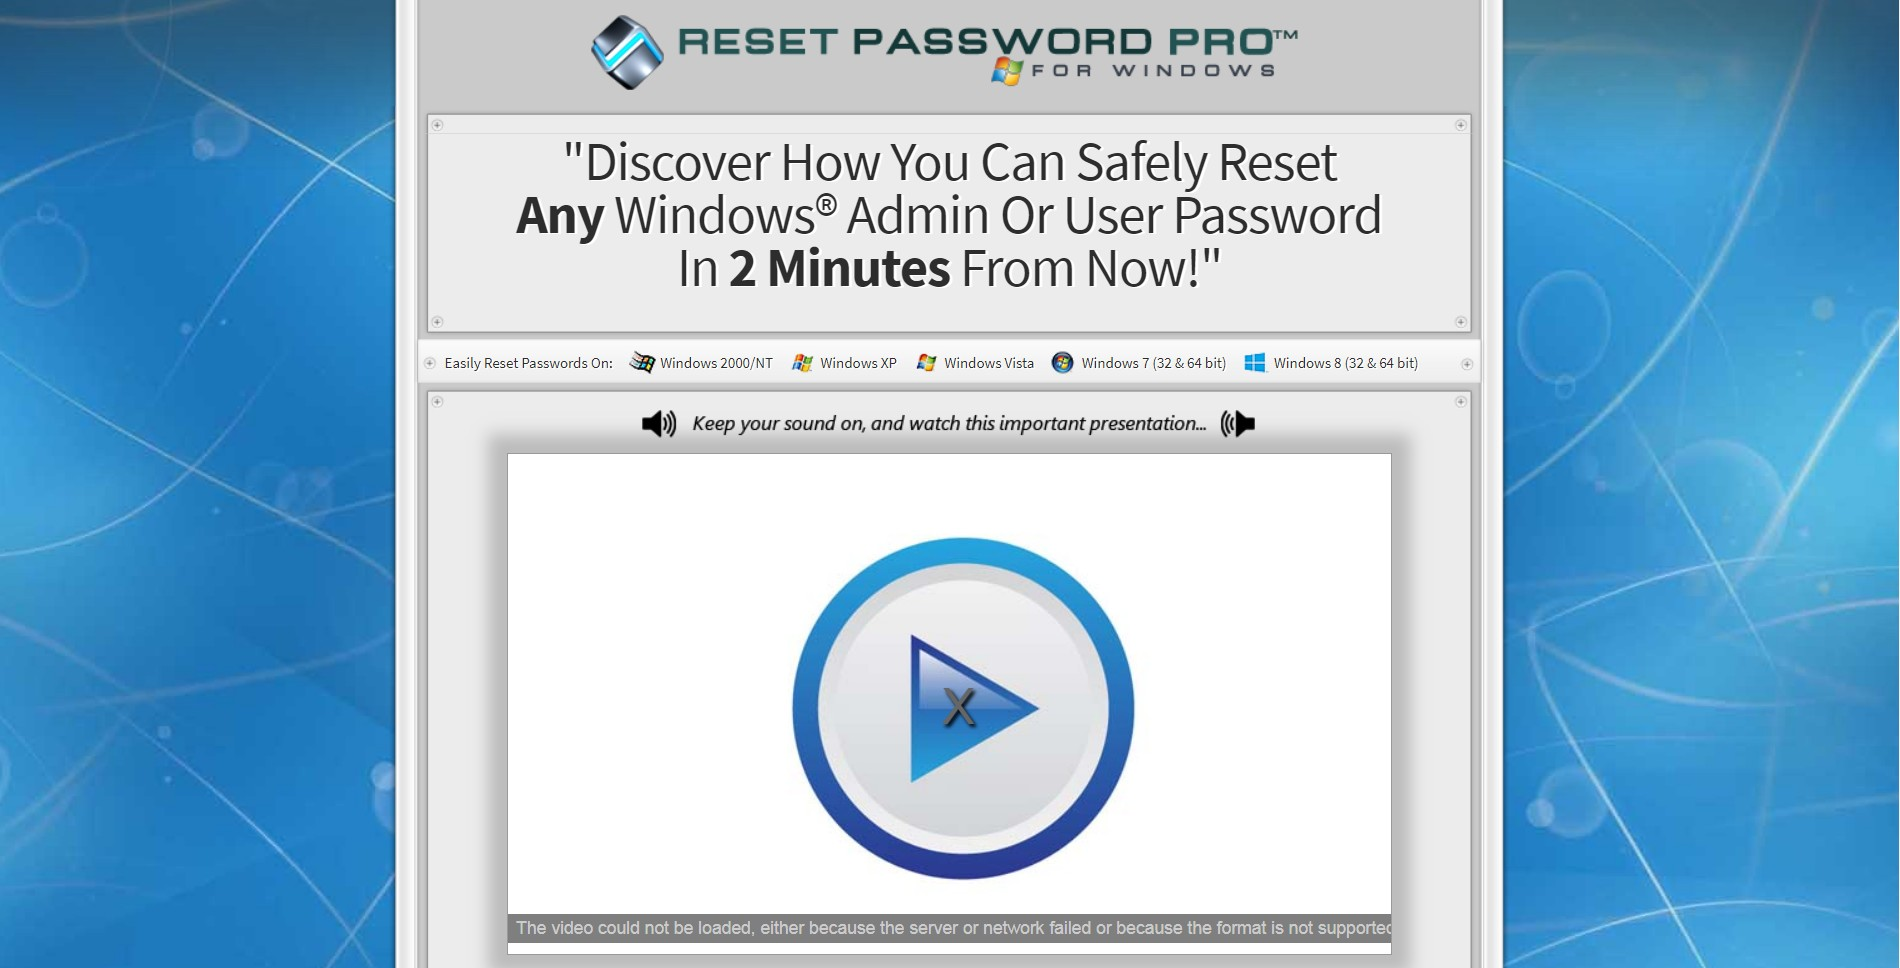 reset password on windows vista